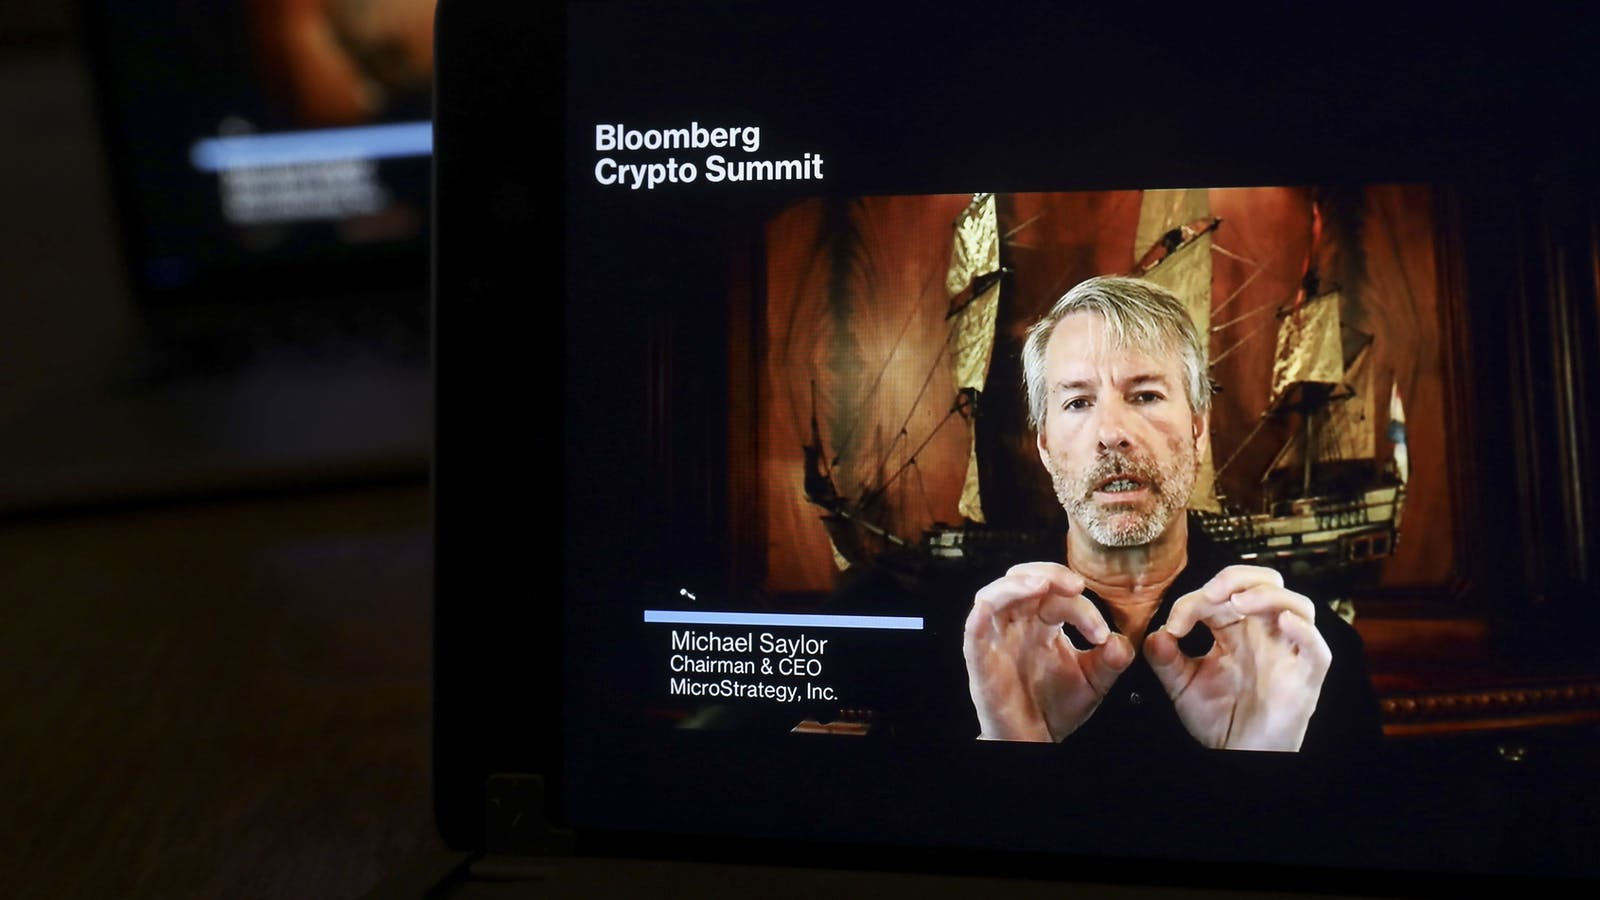 Microstrategy CEO Michael Saylor appearing virtually at a recent crypto conference. Photo by Bloomberg.